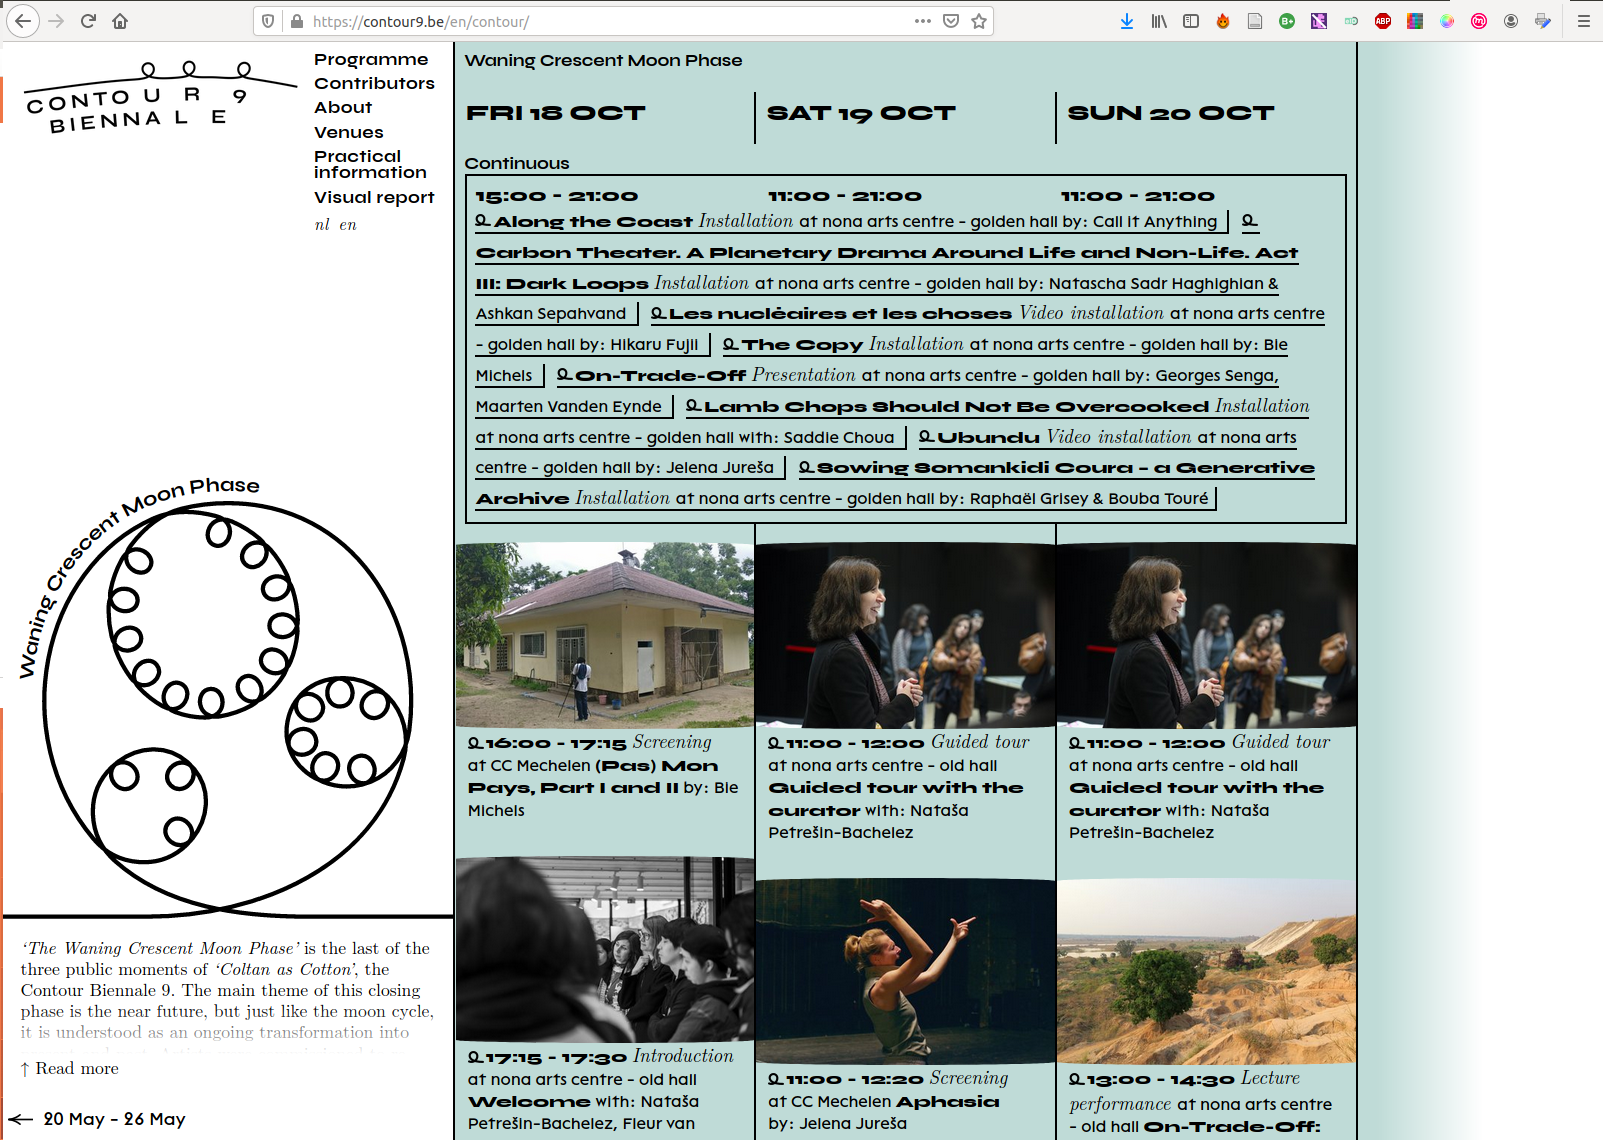 layouts/Screenshot from 2020-02-21 12-12-31.png